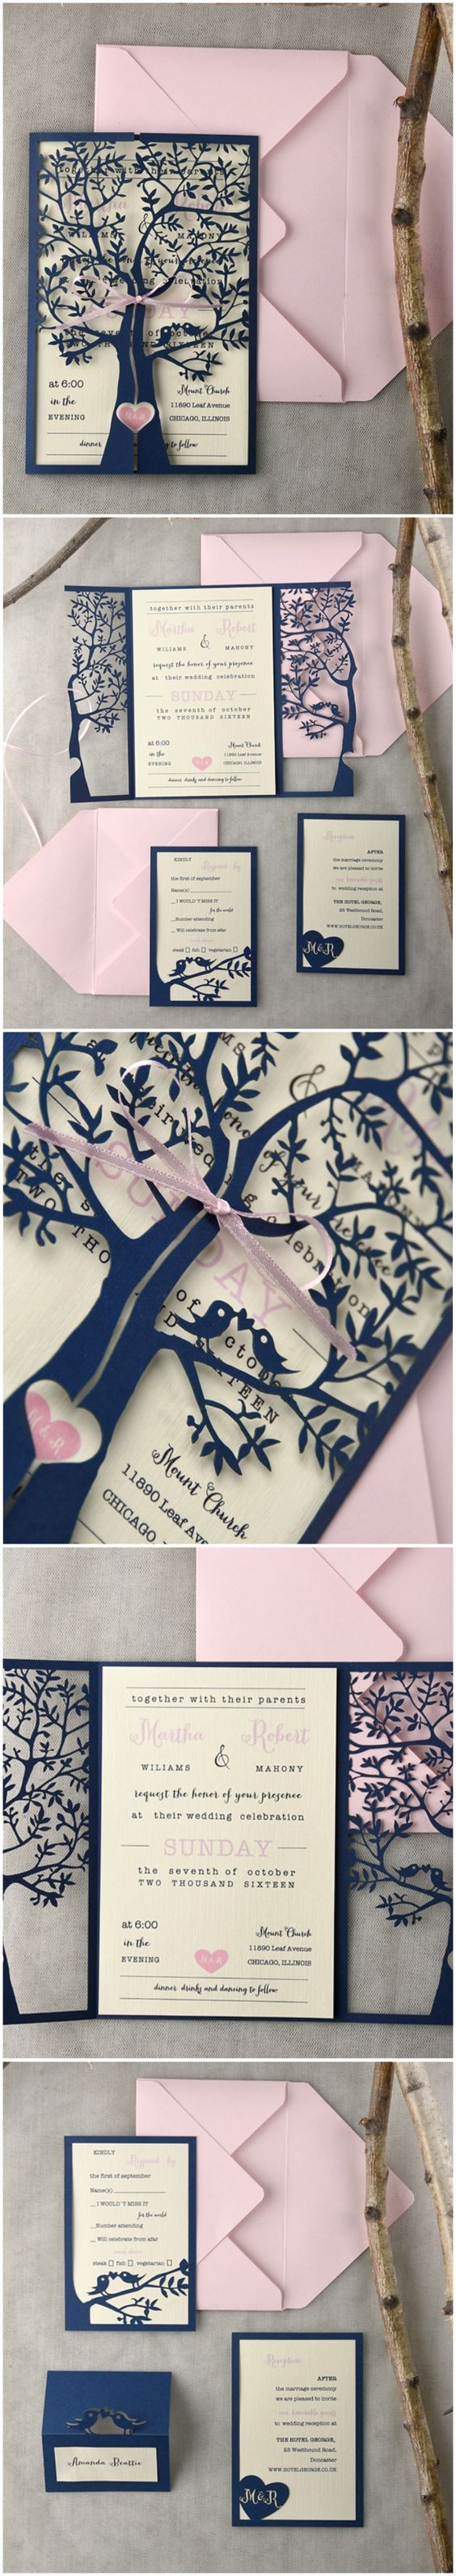 not on the high street winter wedding invitations%0A winter elegant and navy blue laser cut wedding invitations  rustic wedding  ideas  lace wedding